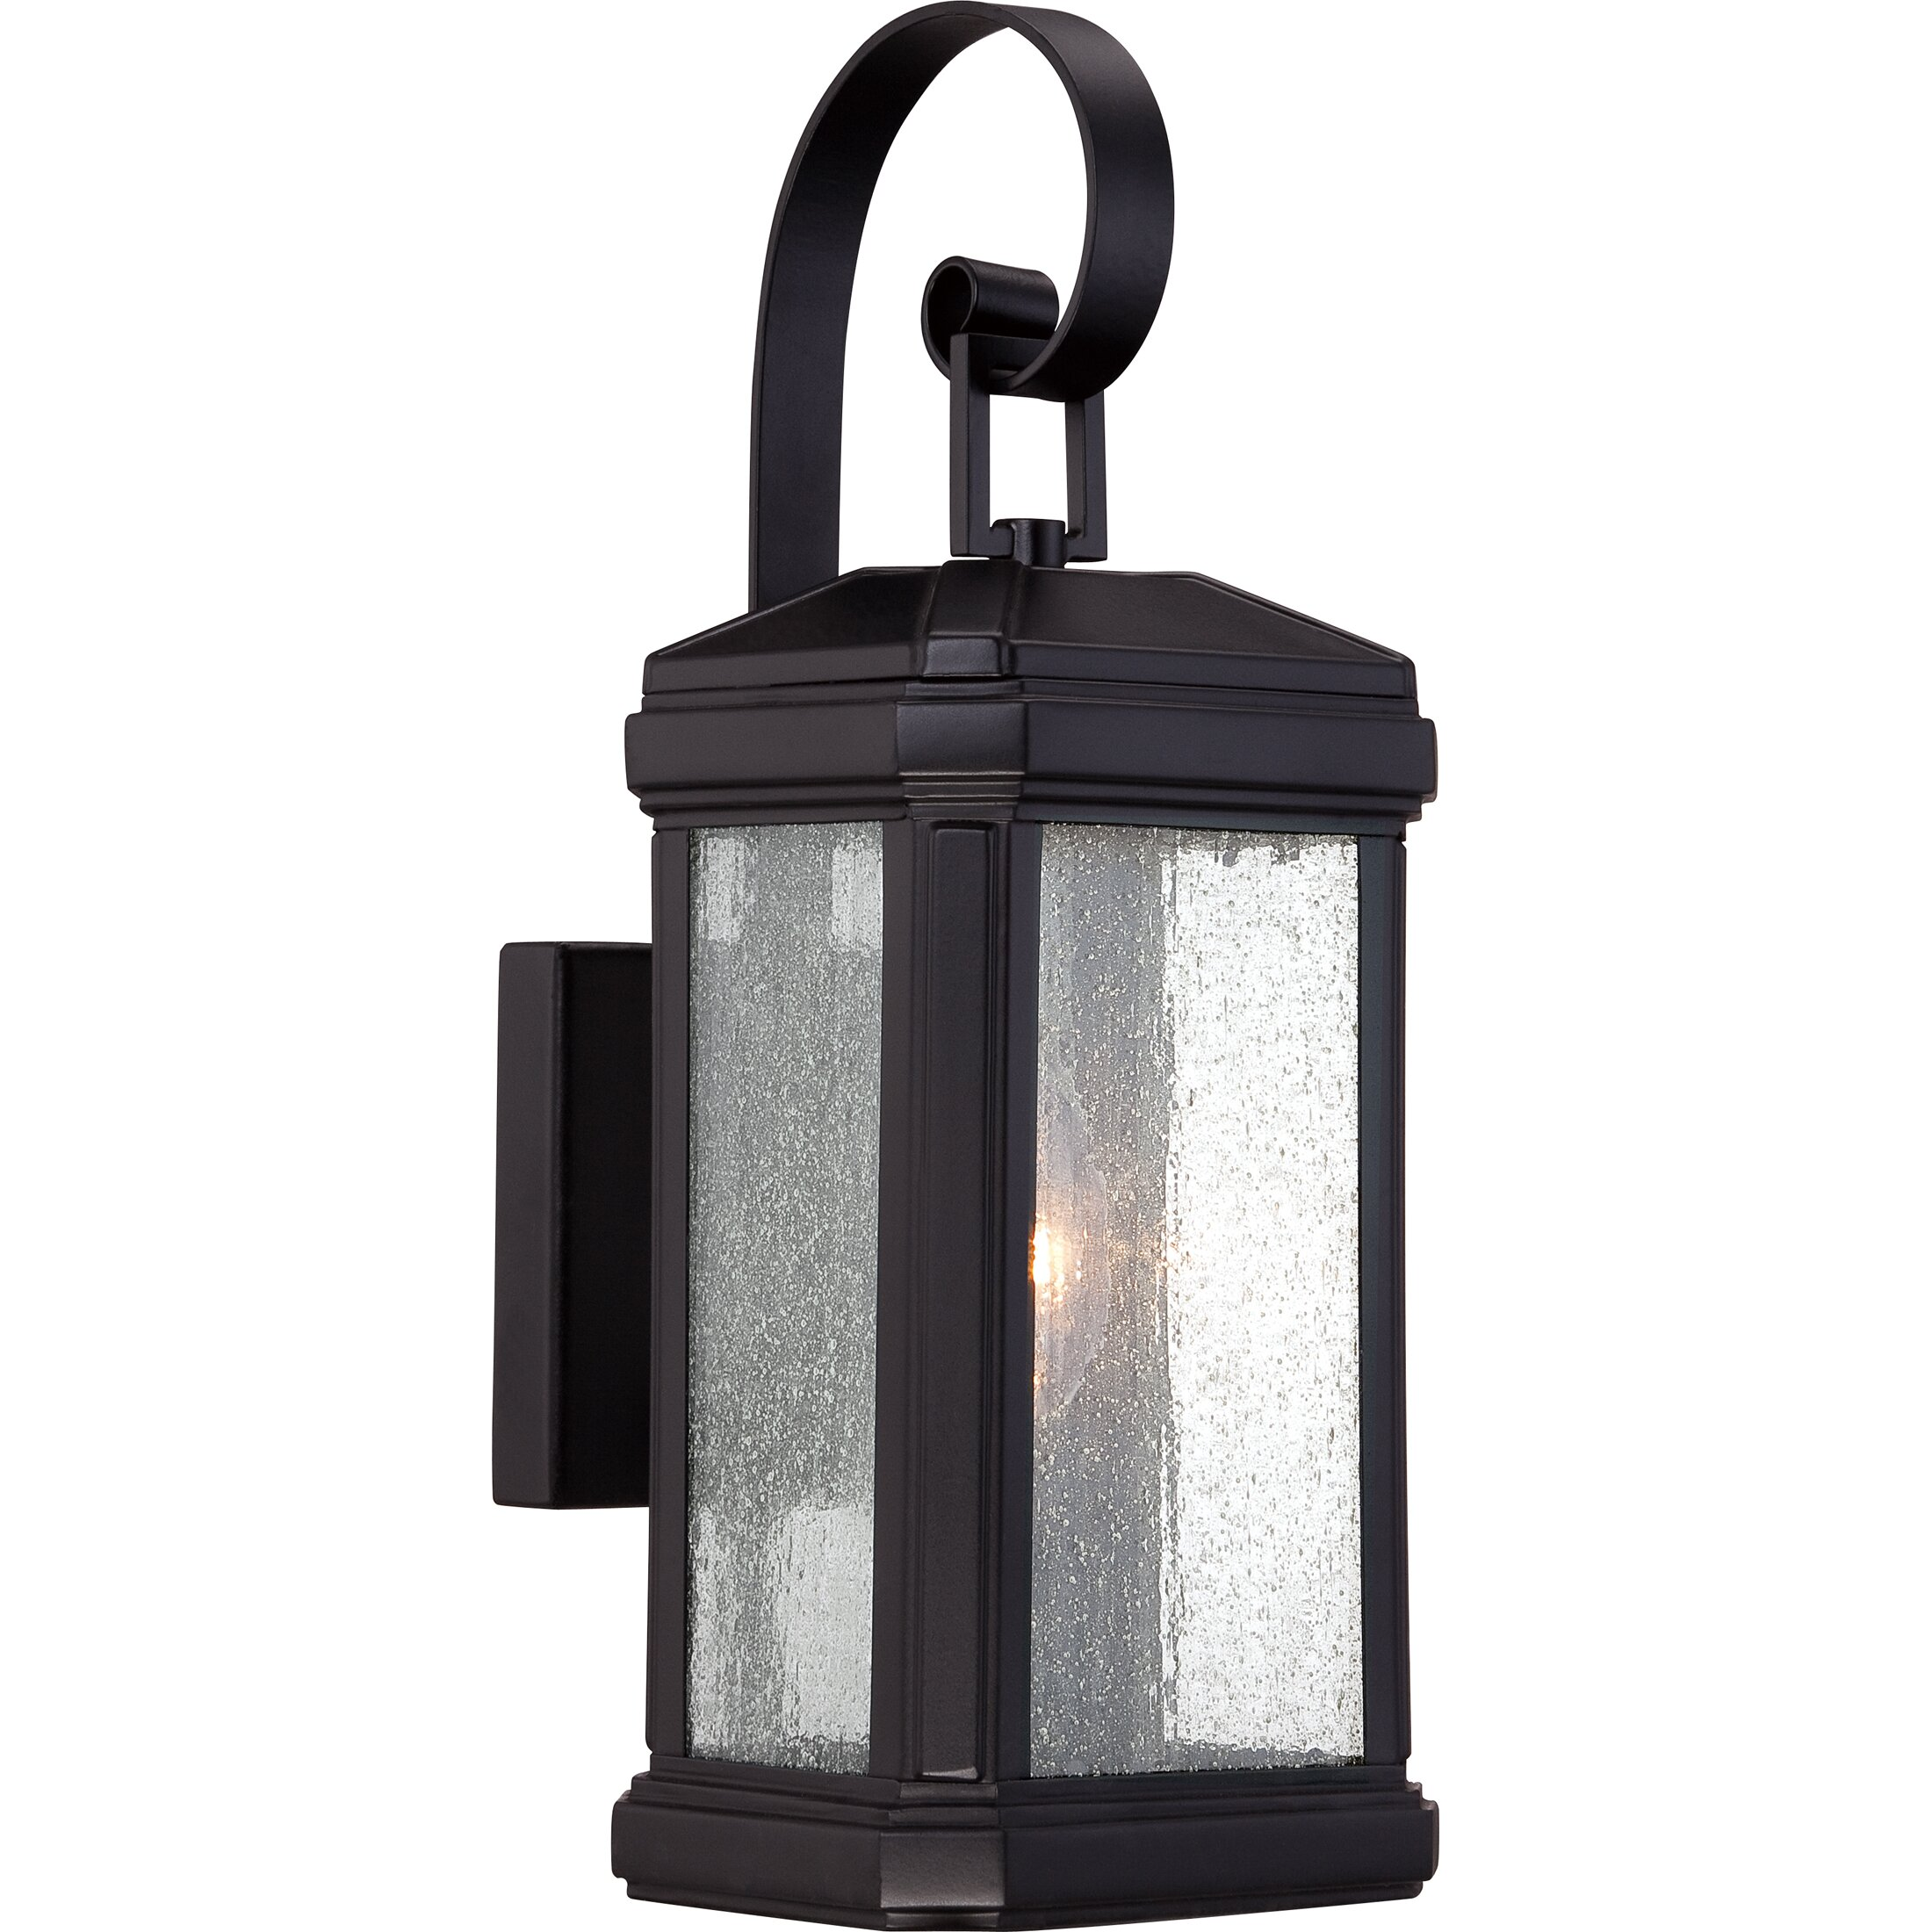 Lantern Wall Light Outdoor : Quoizel Trumbull 1 Light Outdoor Wall Lantern & Reviews Wayfair